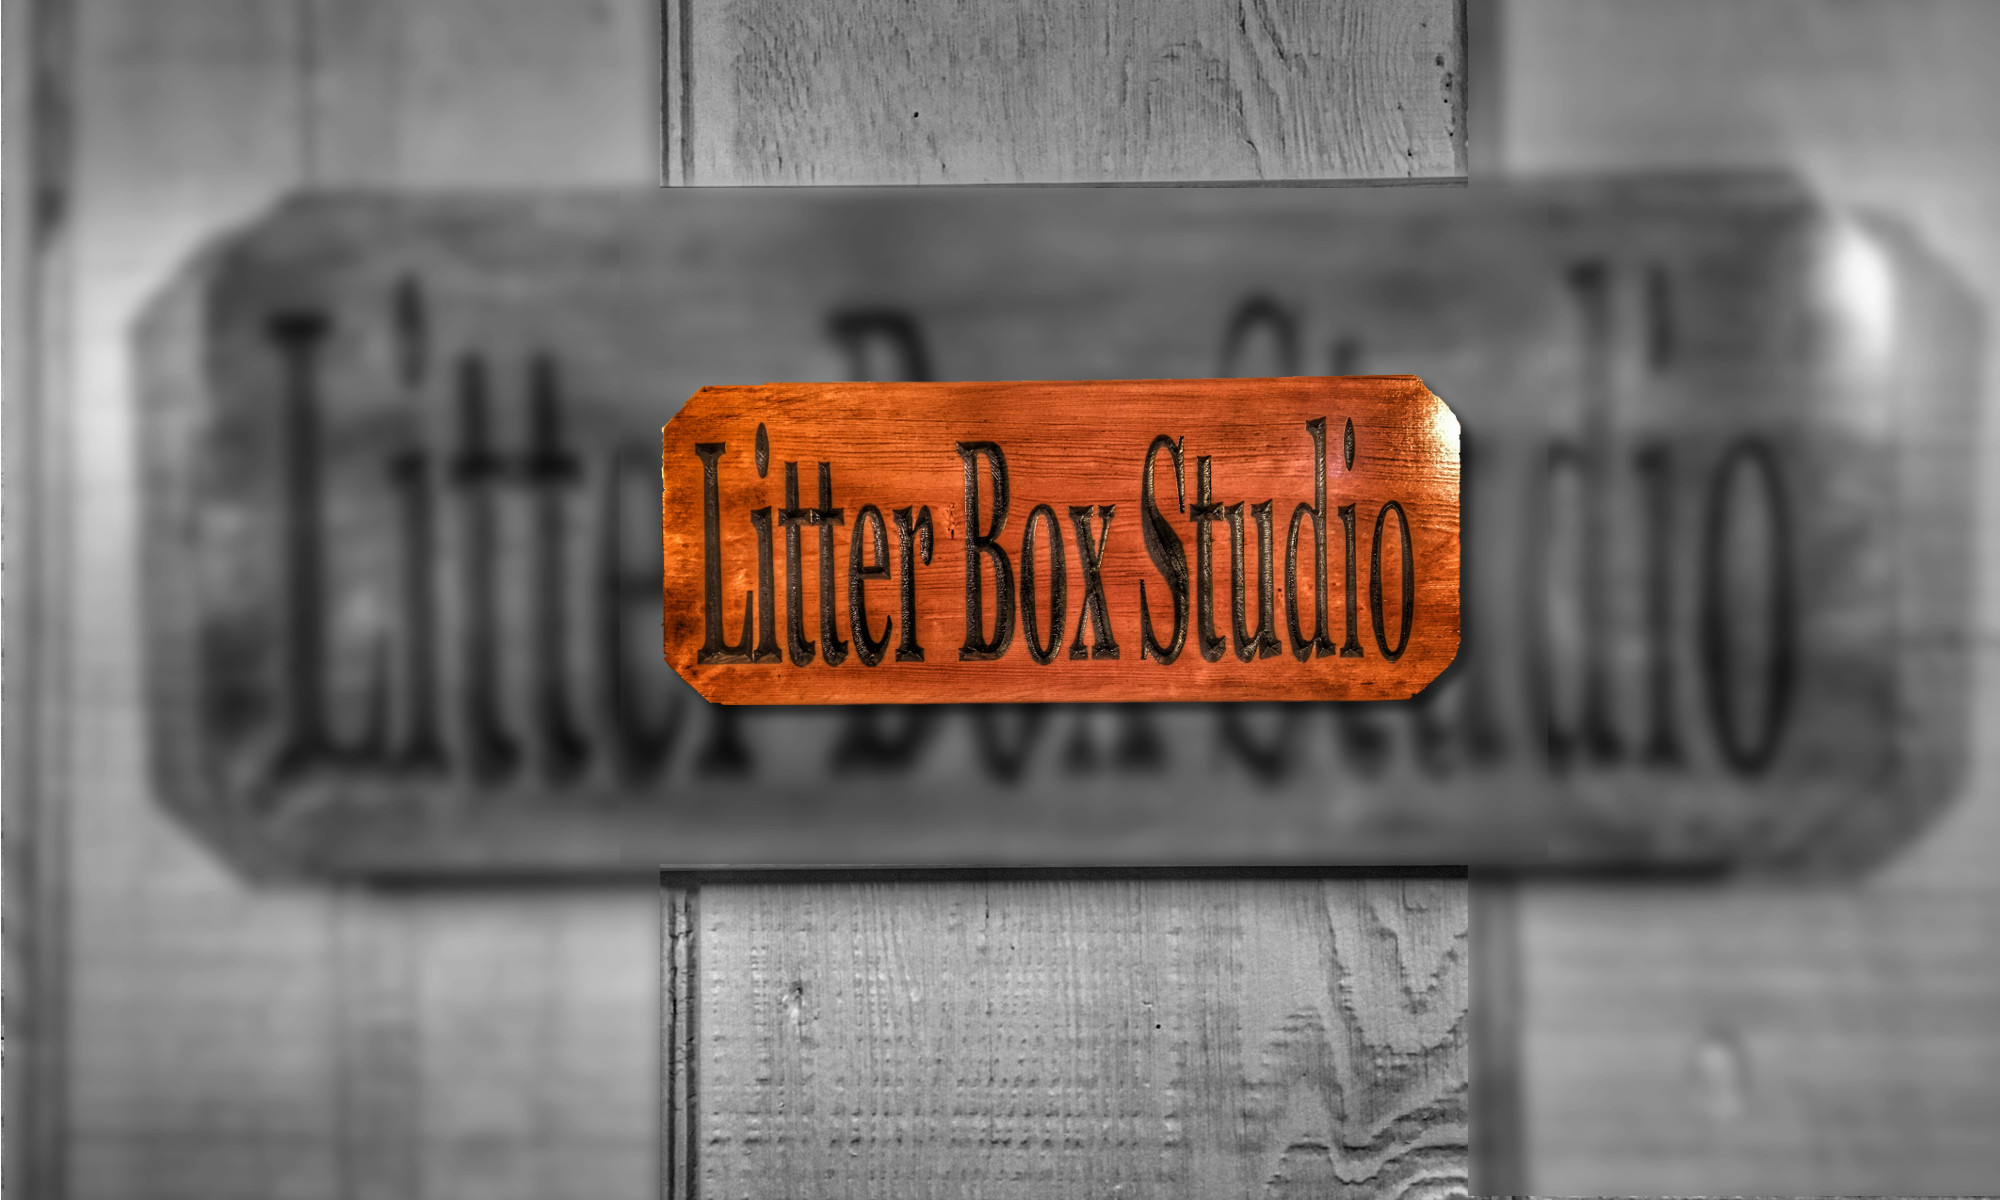 Litter Box Studio